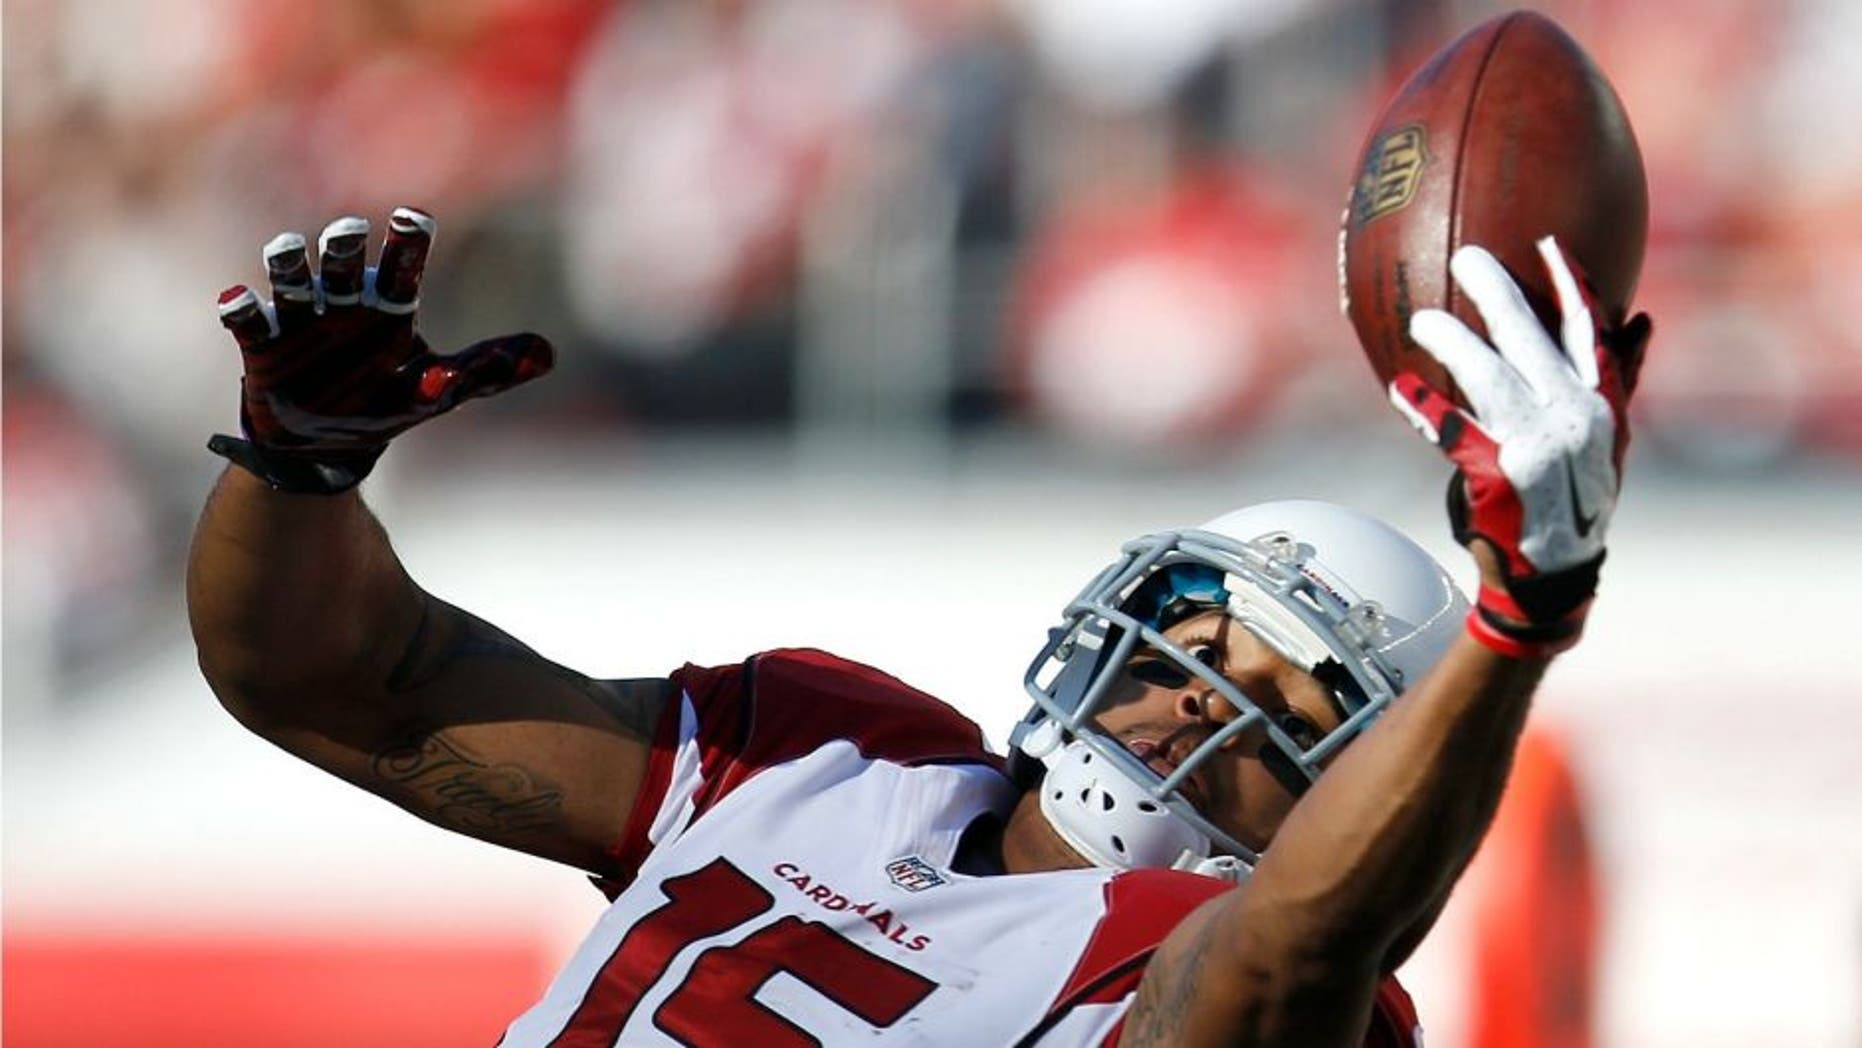 Arizona Cardinals wide receiver Michael Floyd (15) catches a pass against the San Francisco 49ers during the first half of an NFL football game in Santa Clara, Calif., Sunday, Dec. 28, 2014. (AP Photo/Tony Avelar)